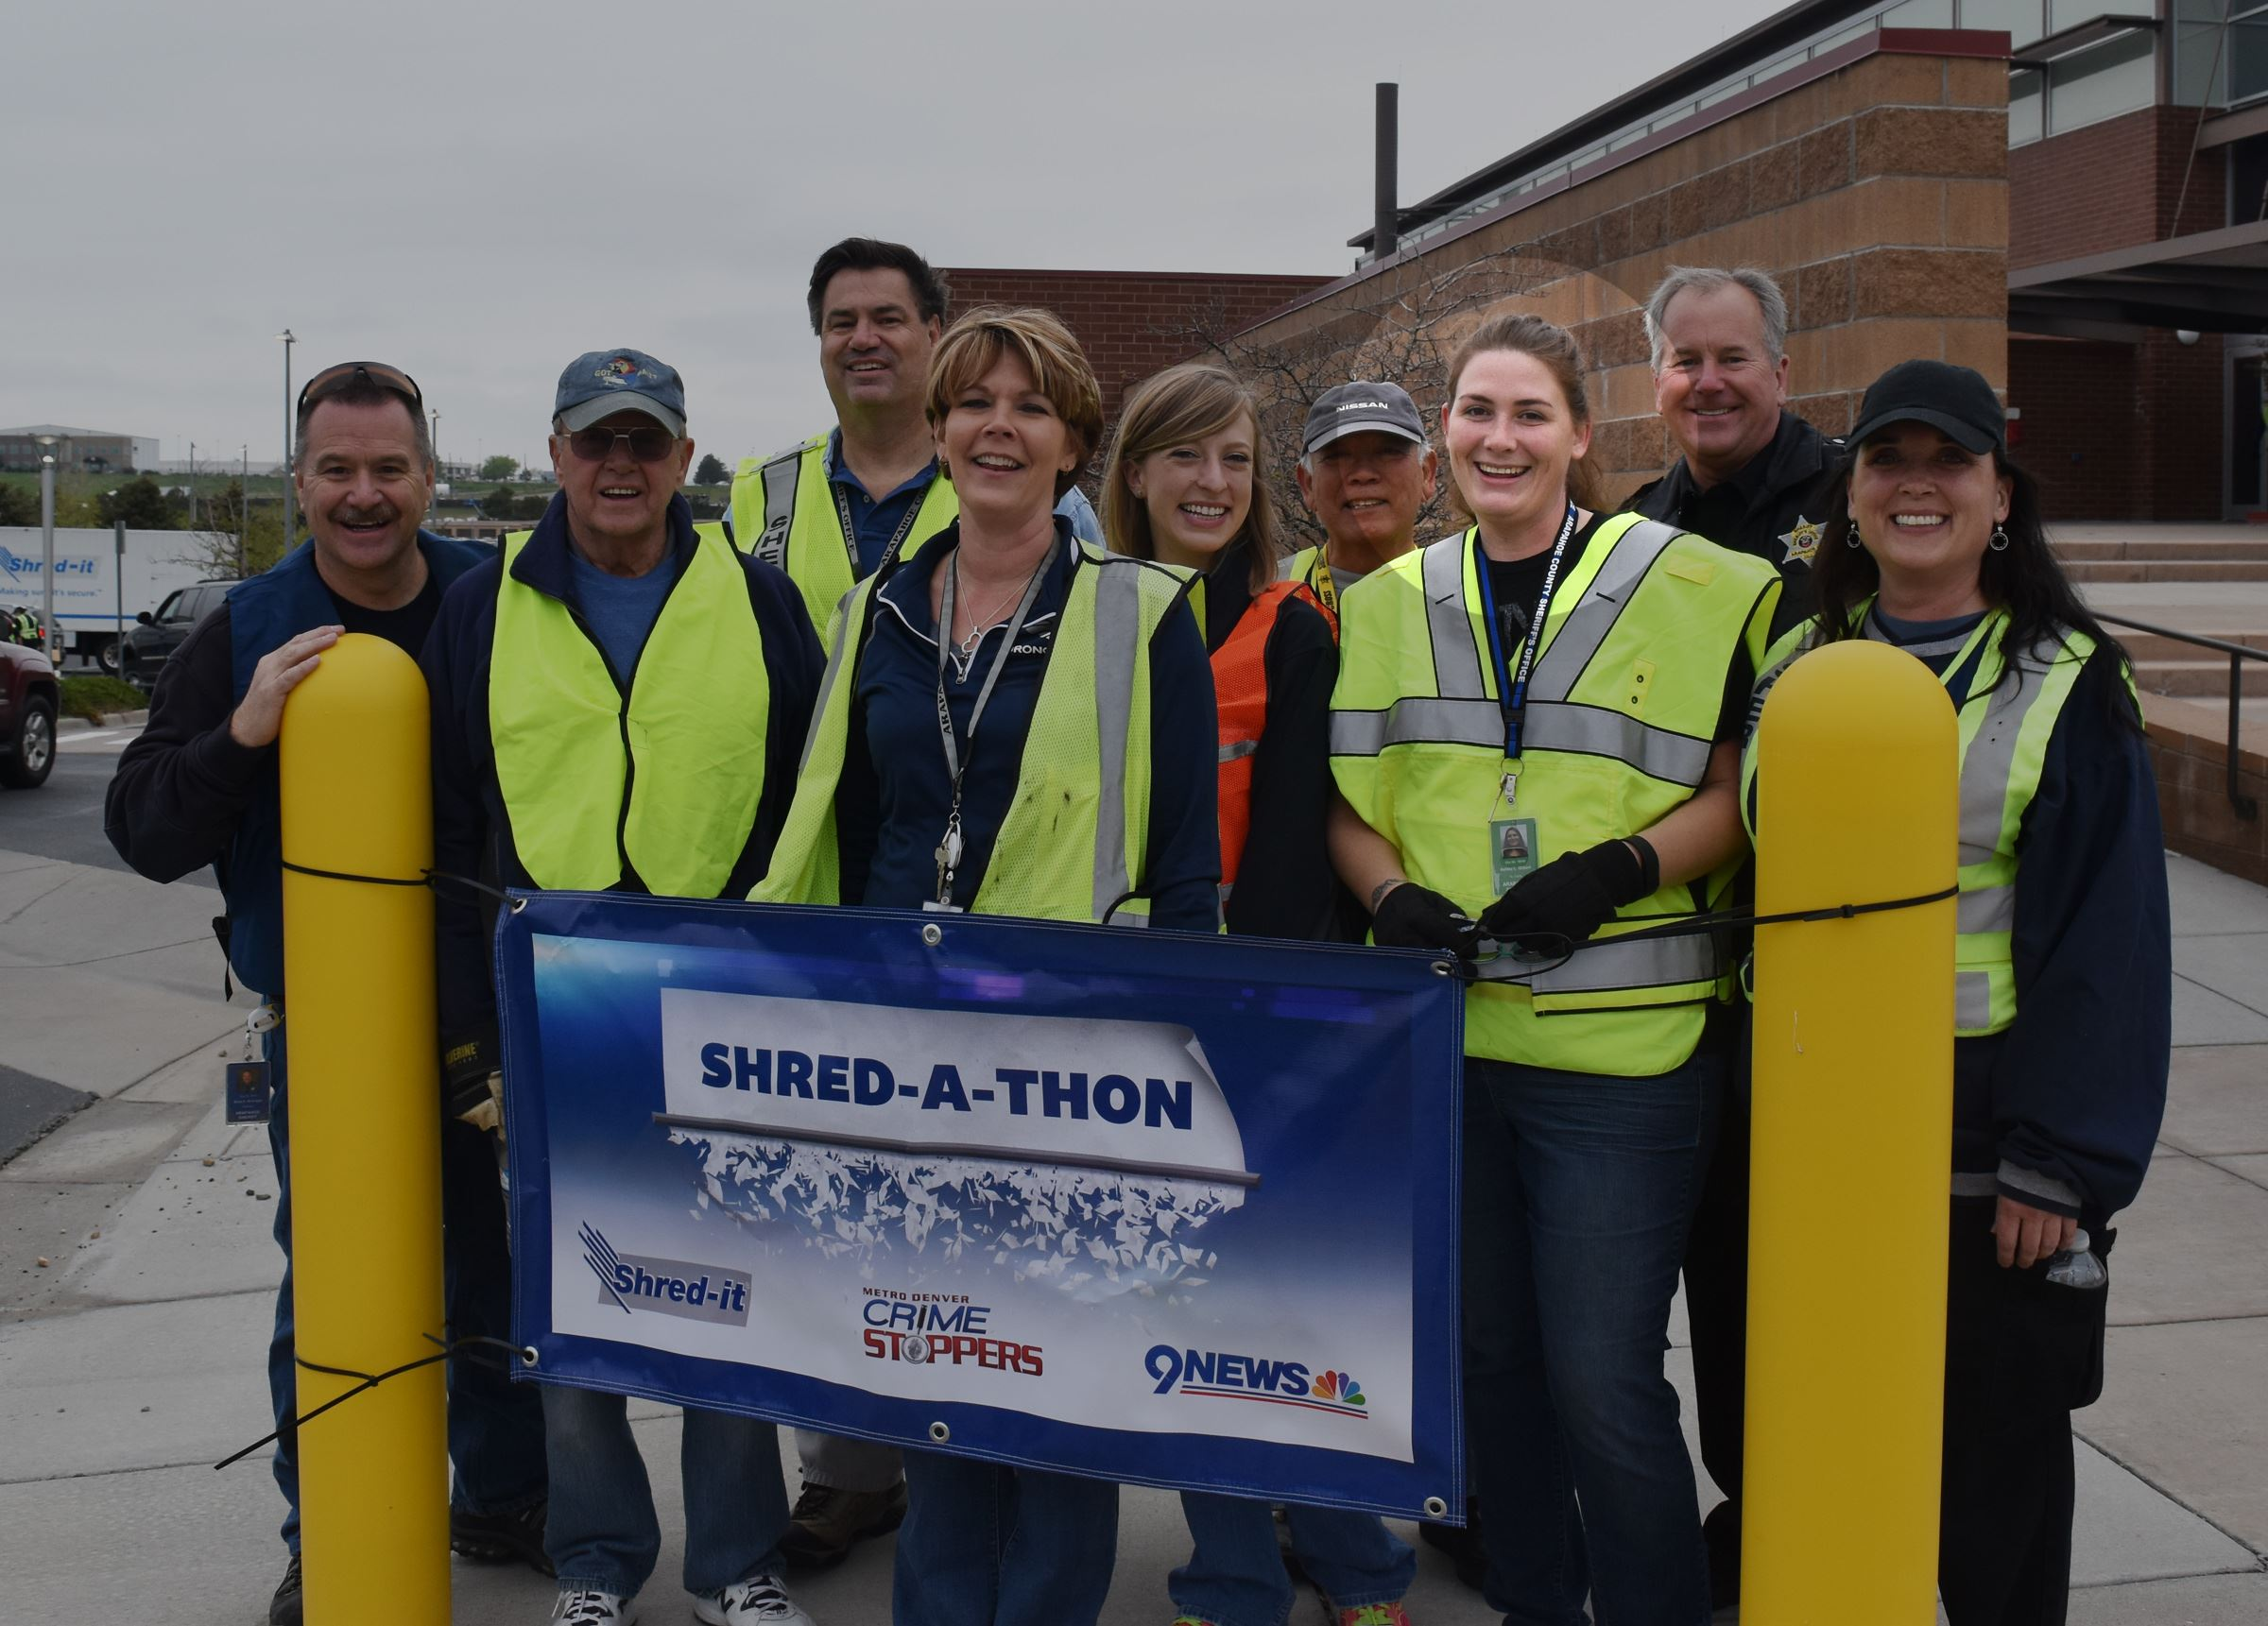 Ashley and other staff at the Shred a Thon